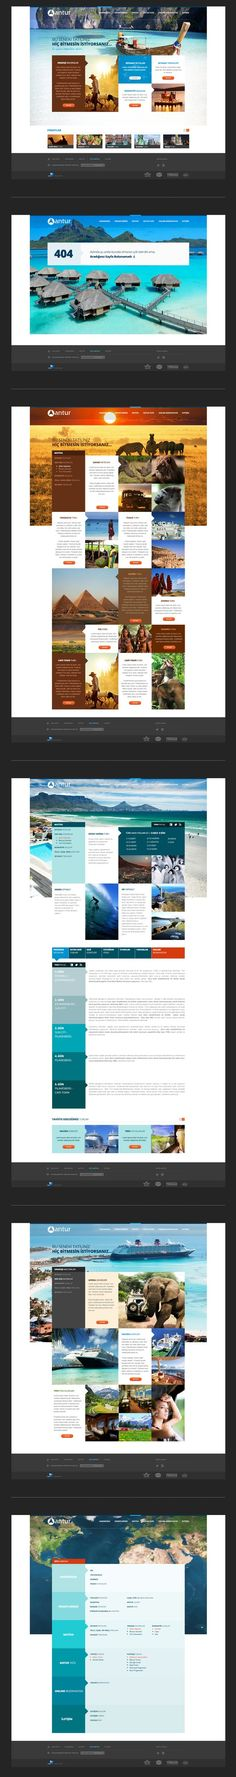 #webdesign #flat #interface